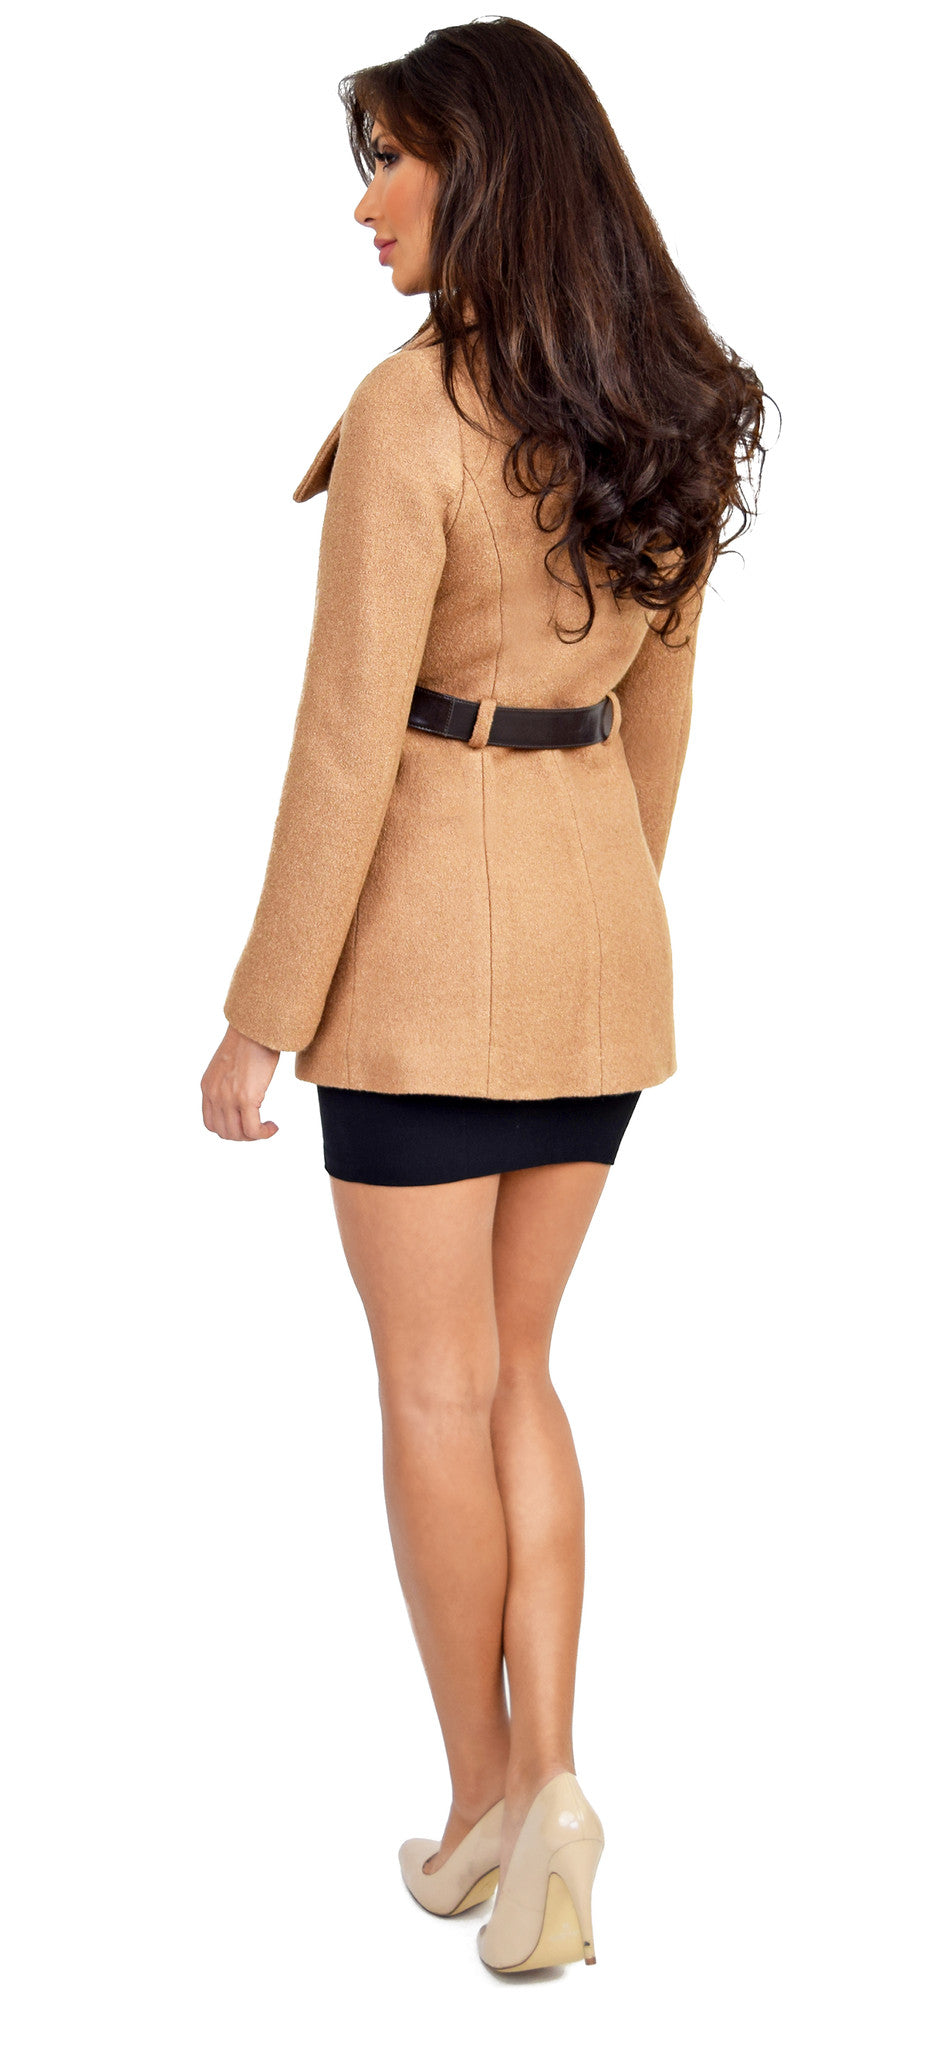 Drew Camel Fitted Wool Jacket With Belt At Waist - Emprada